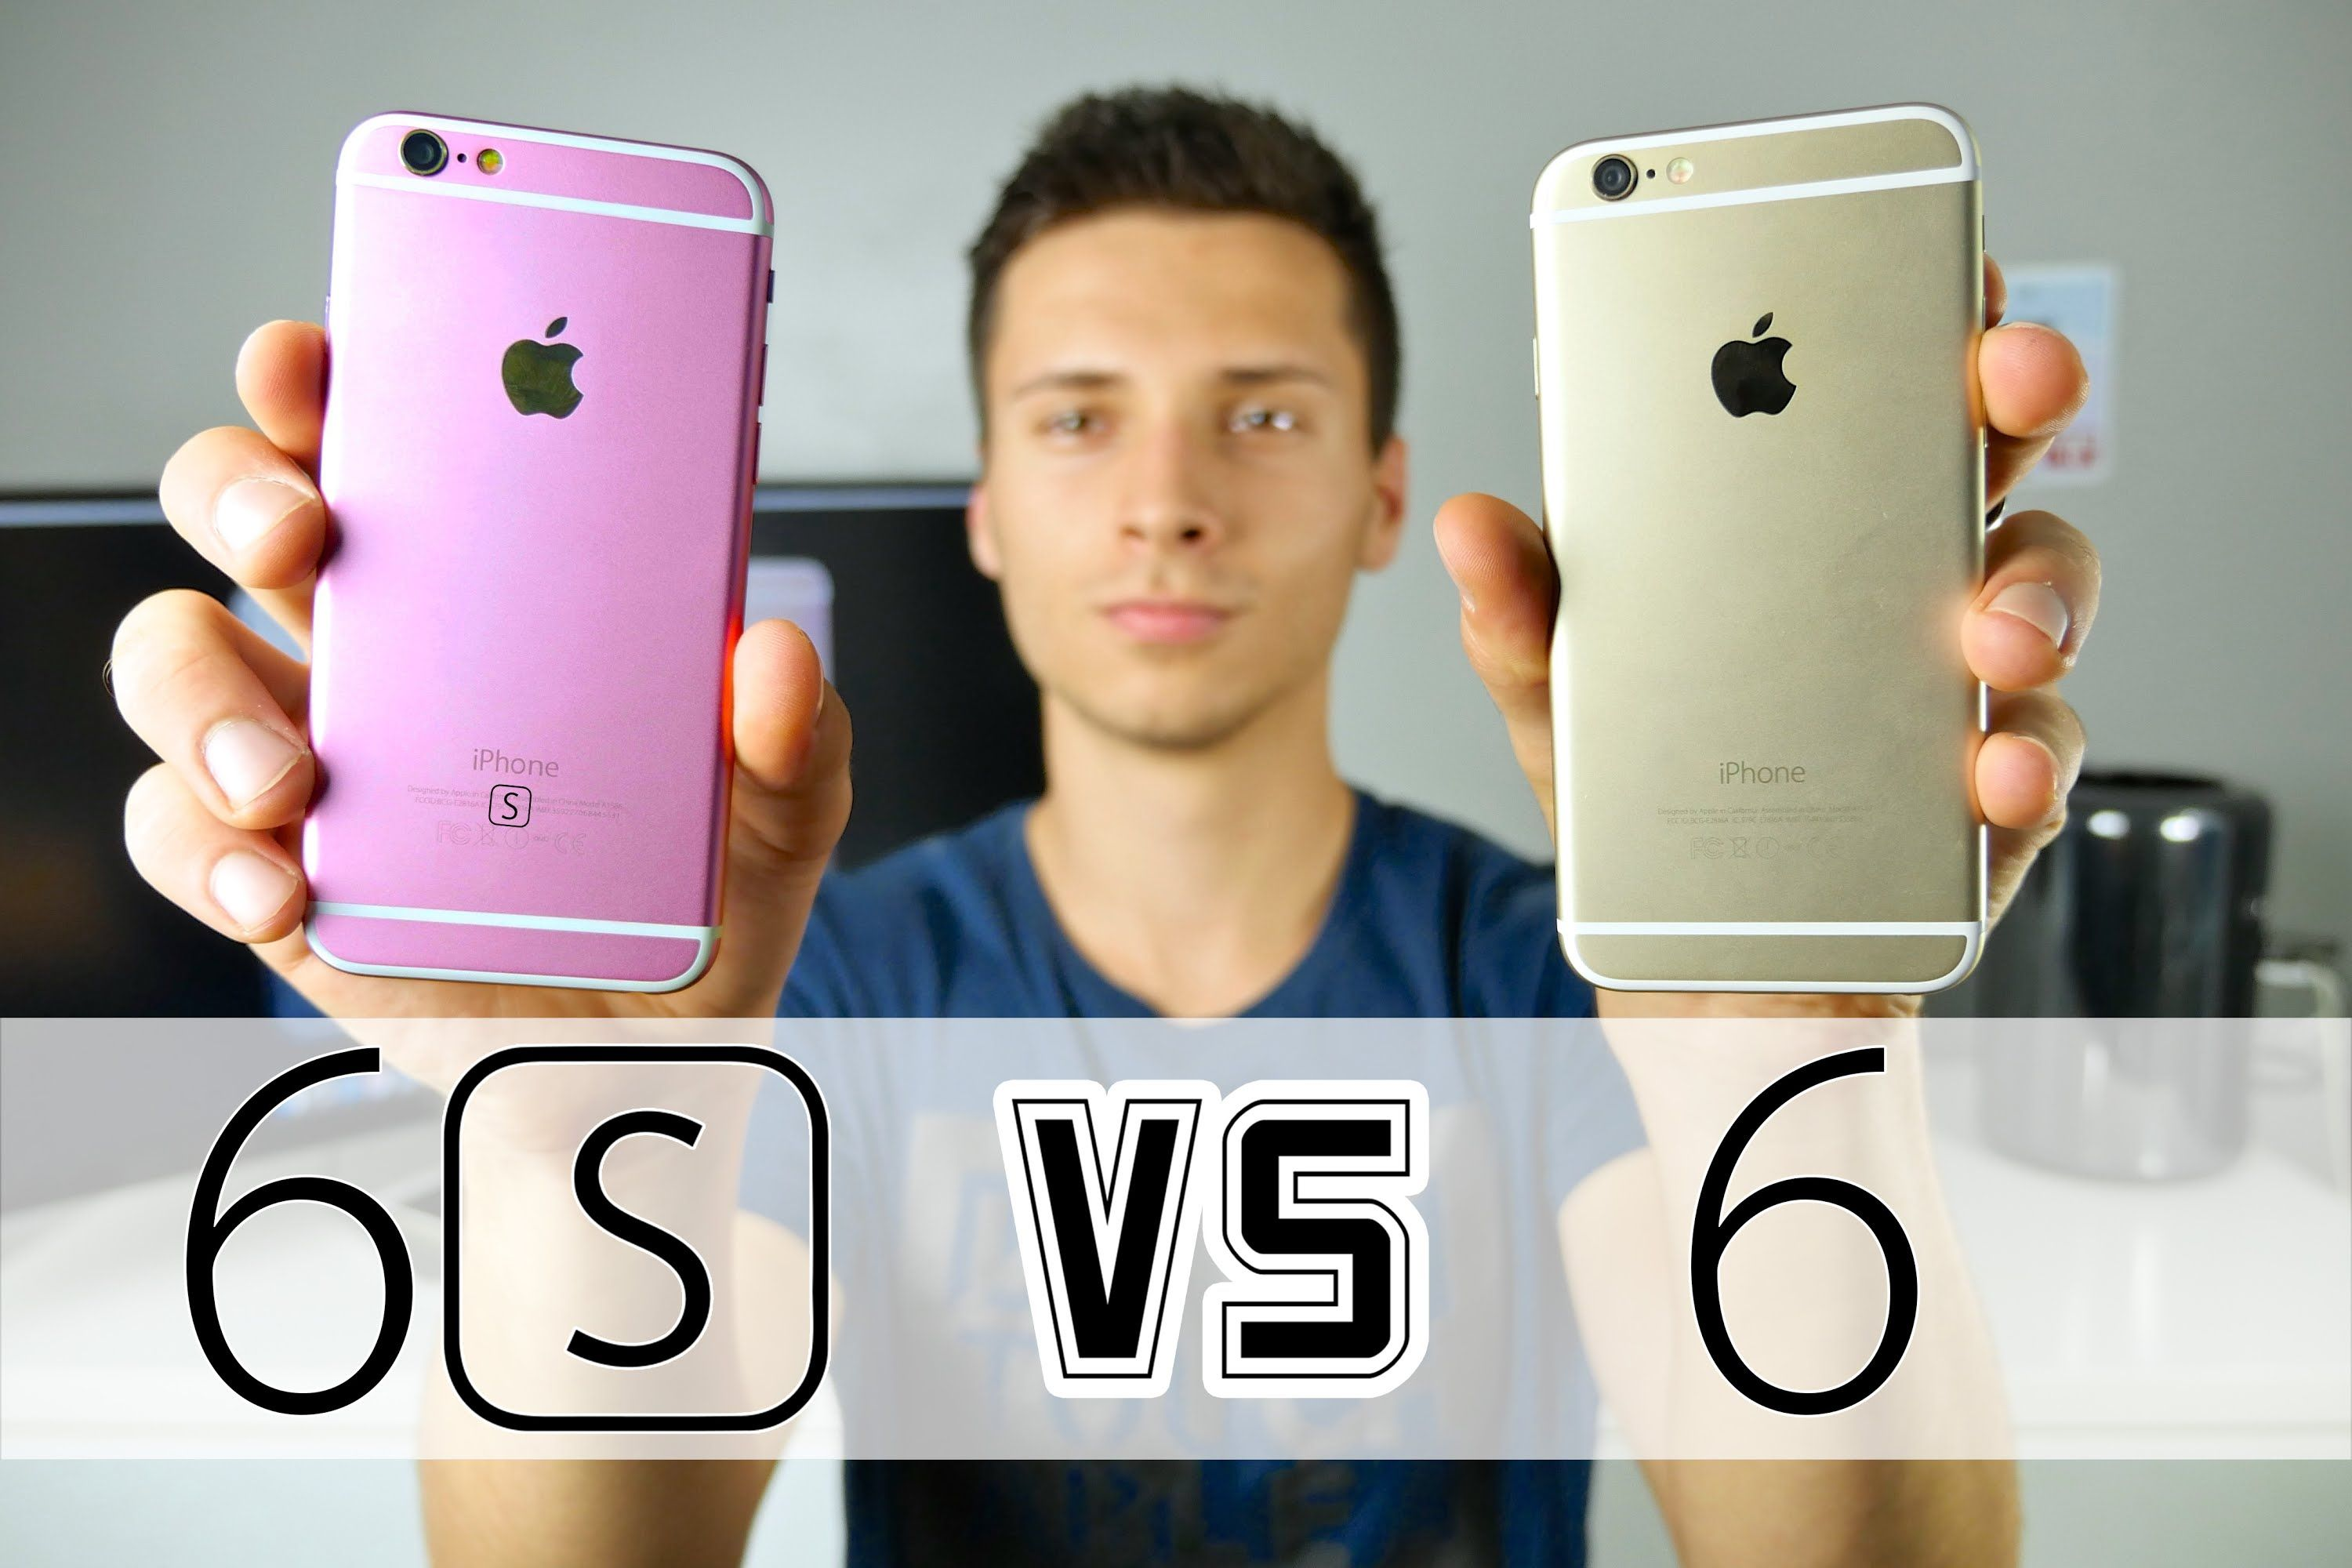 Iphone 6s Vs Iphone 6 Should You Upgrade Iphone Iphone Upgrade Iphone Price